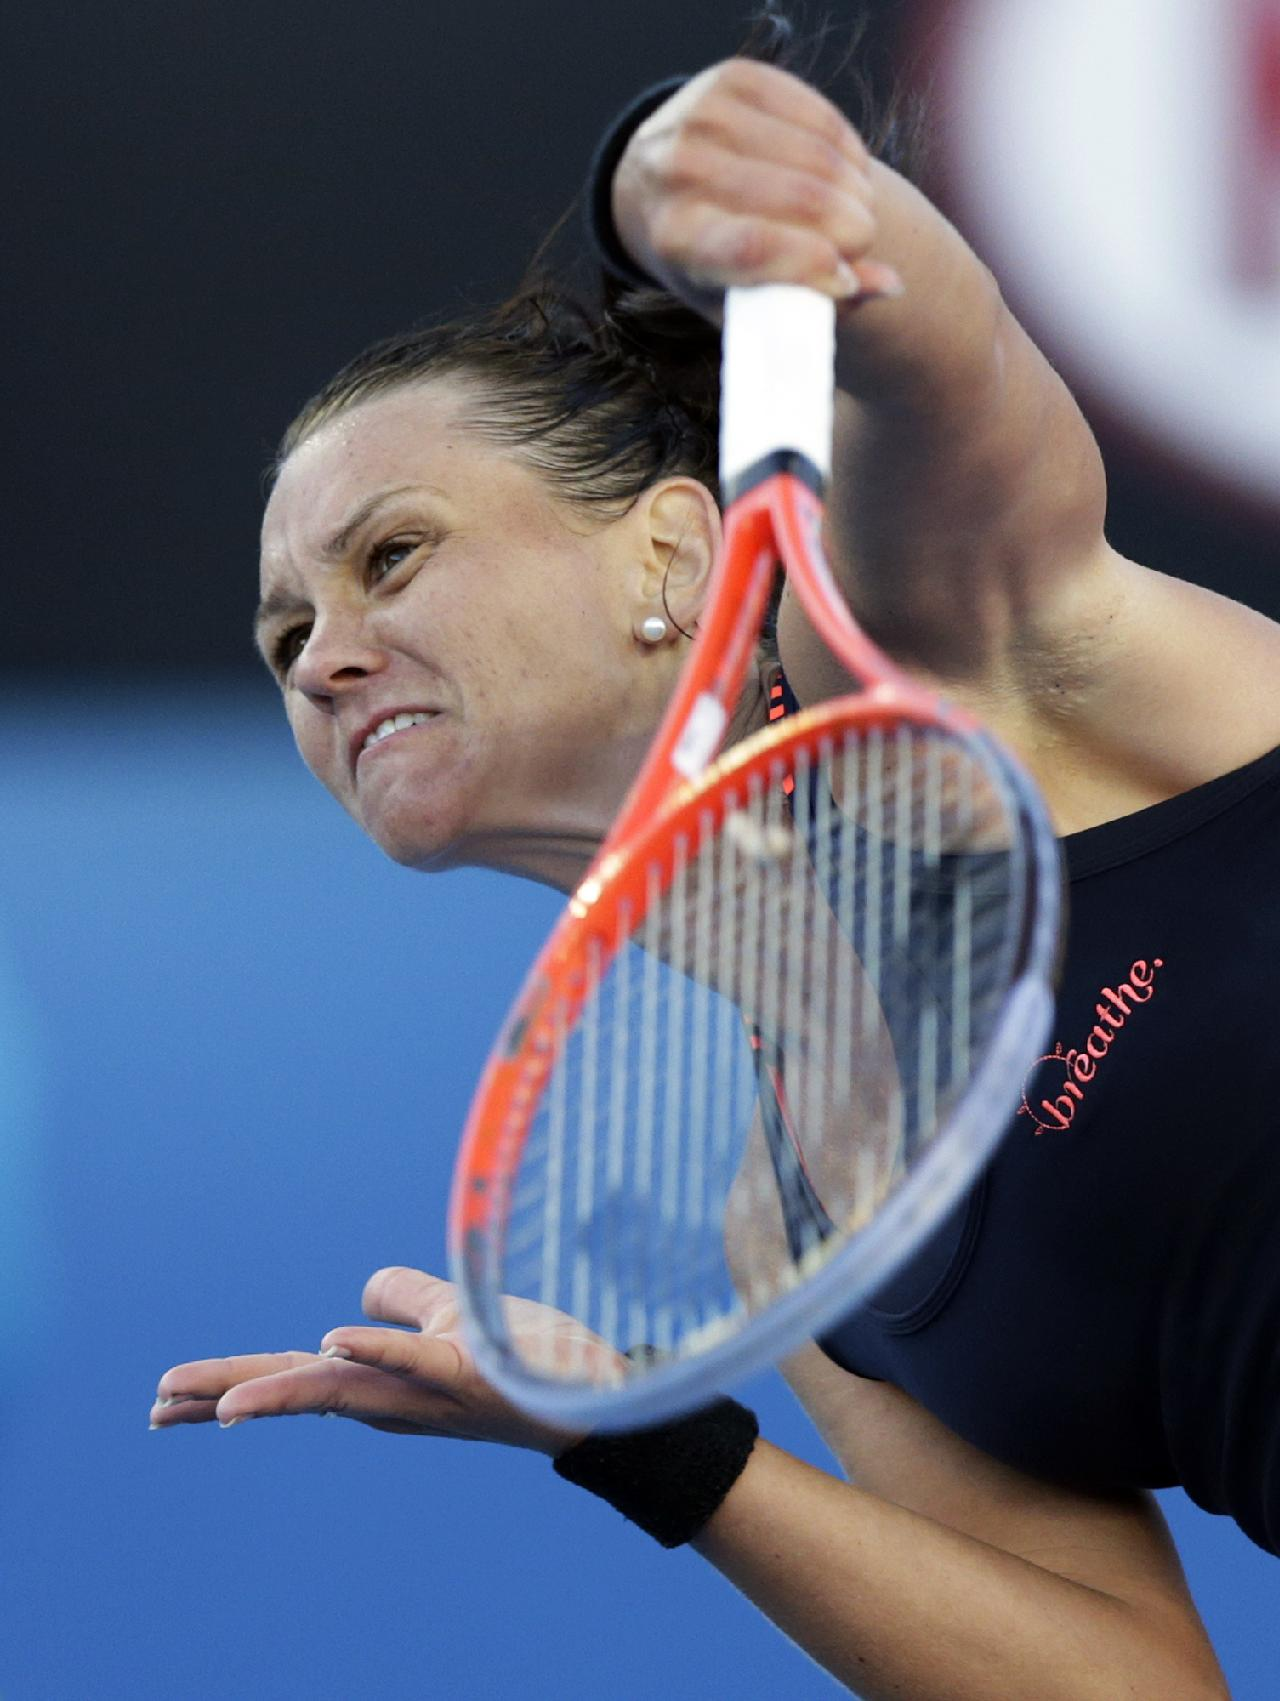 Australia's Casey Dellacqua serves during her first round match against Madison Keys, of the United States, at the Australian Open tennis championship in Melbourne, Australia, Monday, Jan. 14, 2013